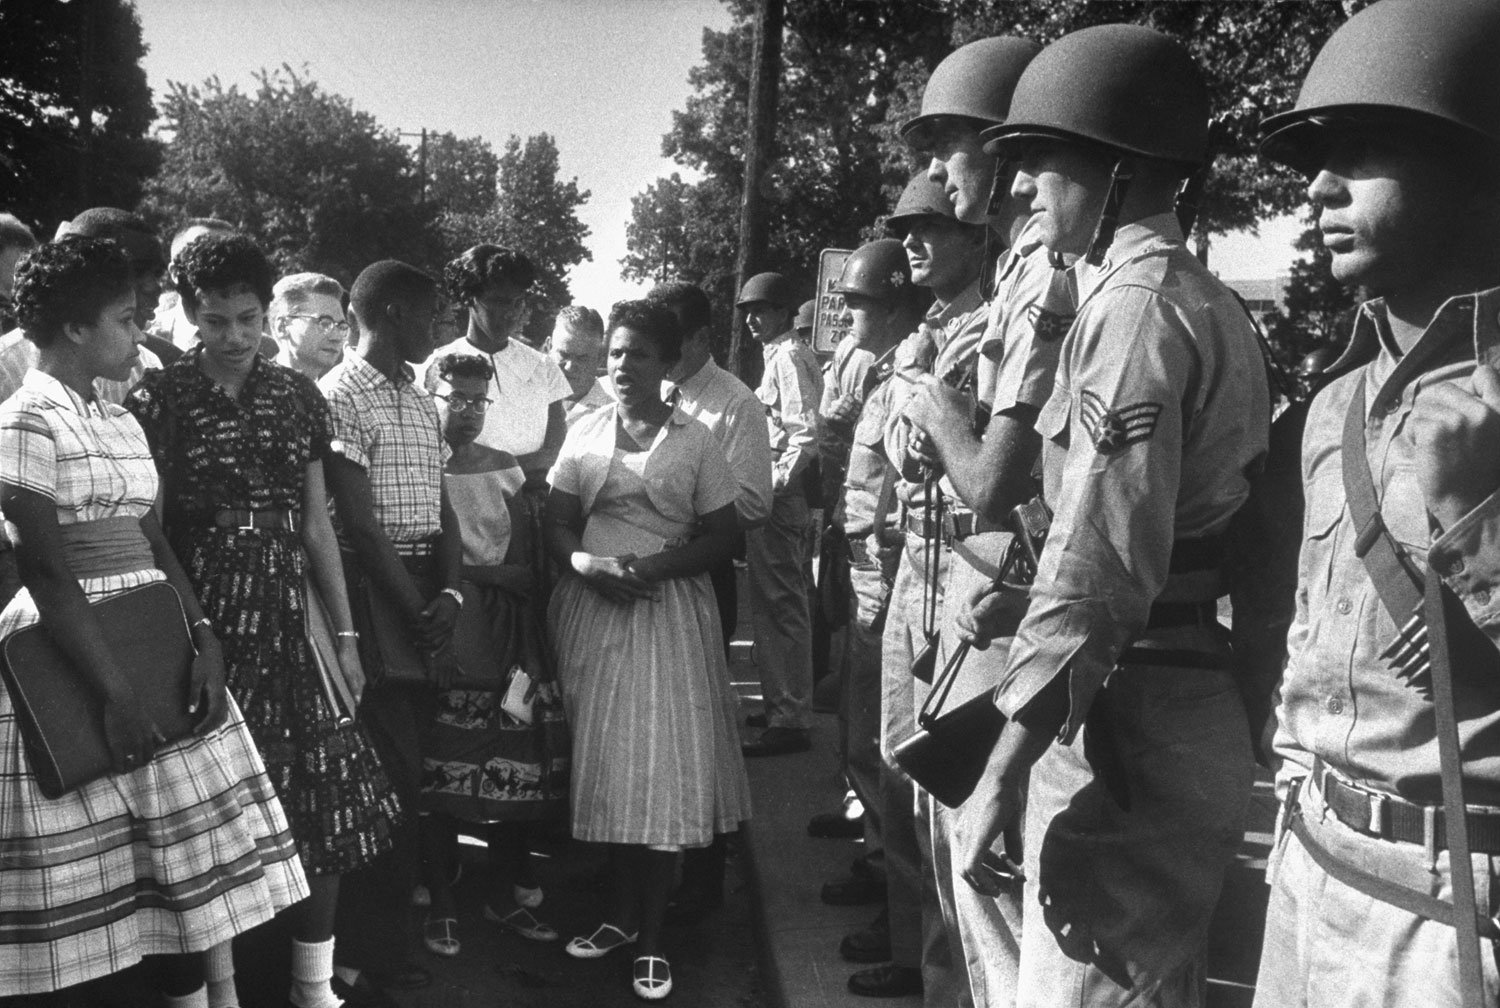 crisis actors, Ku Klux Klan, Little Rock Nine, NAACP, lynch mobs, Jim Crow, white supremacy, racism, fake news